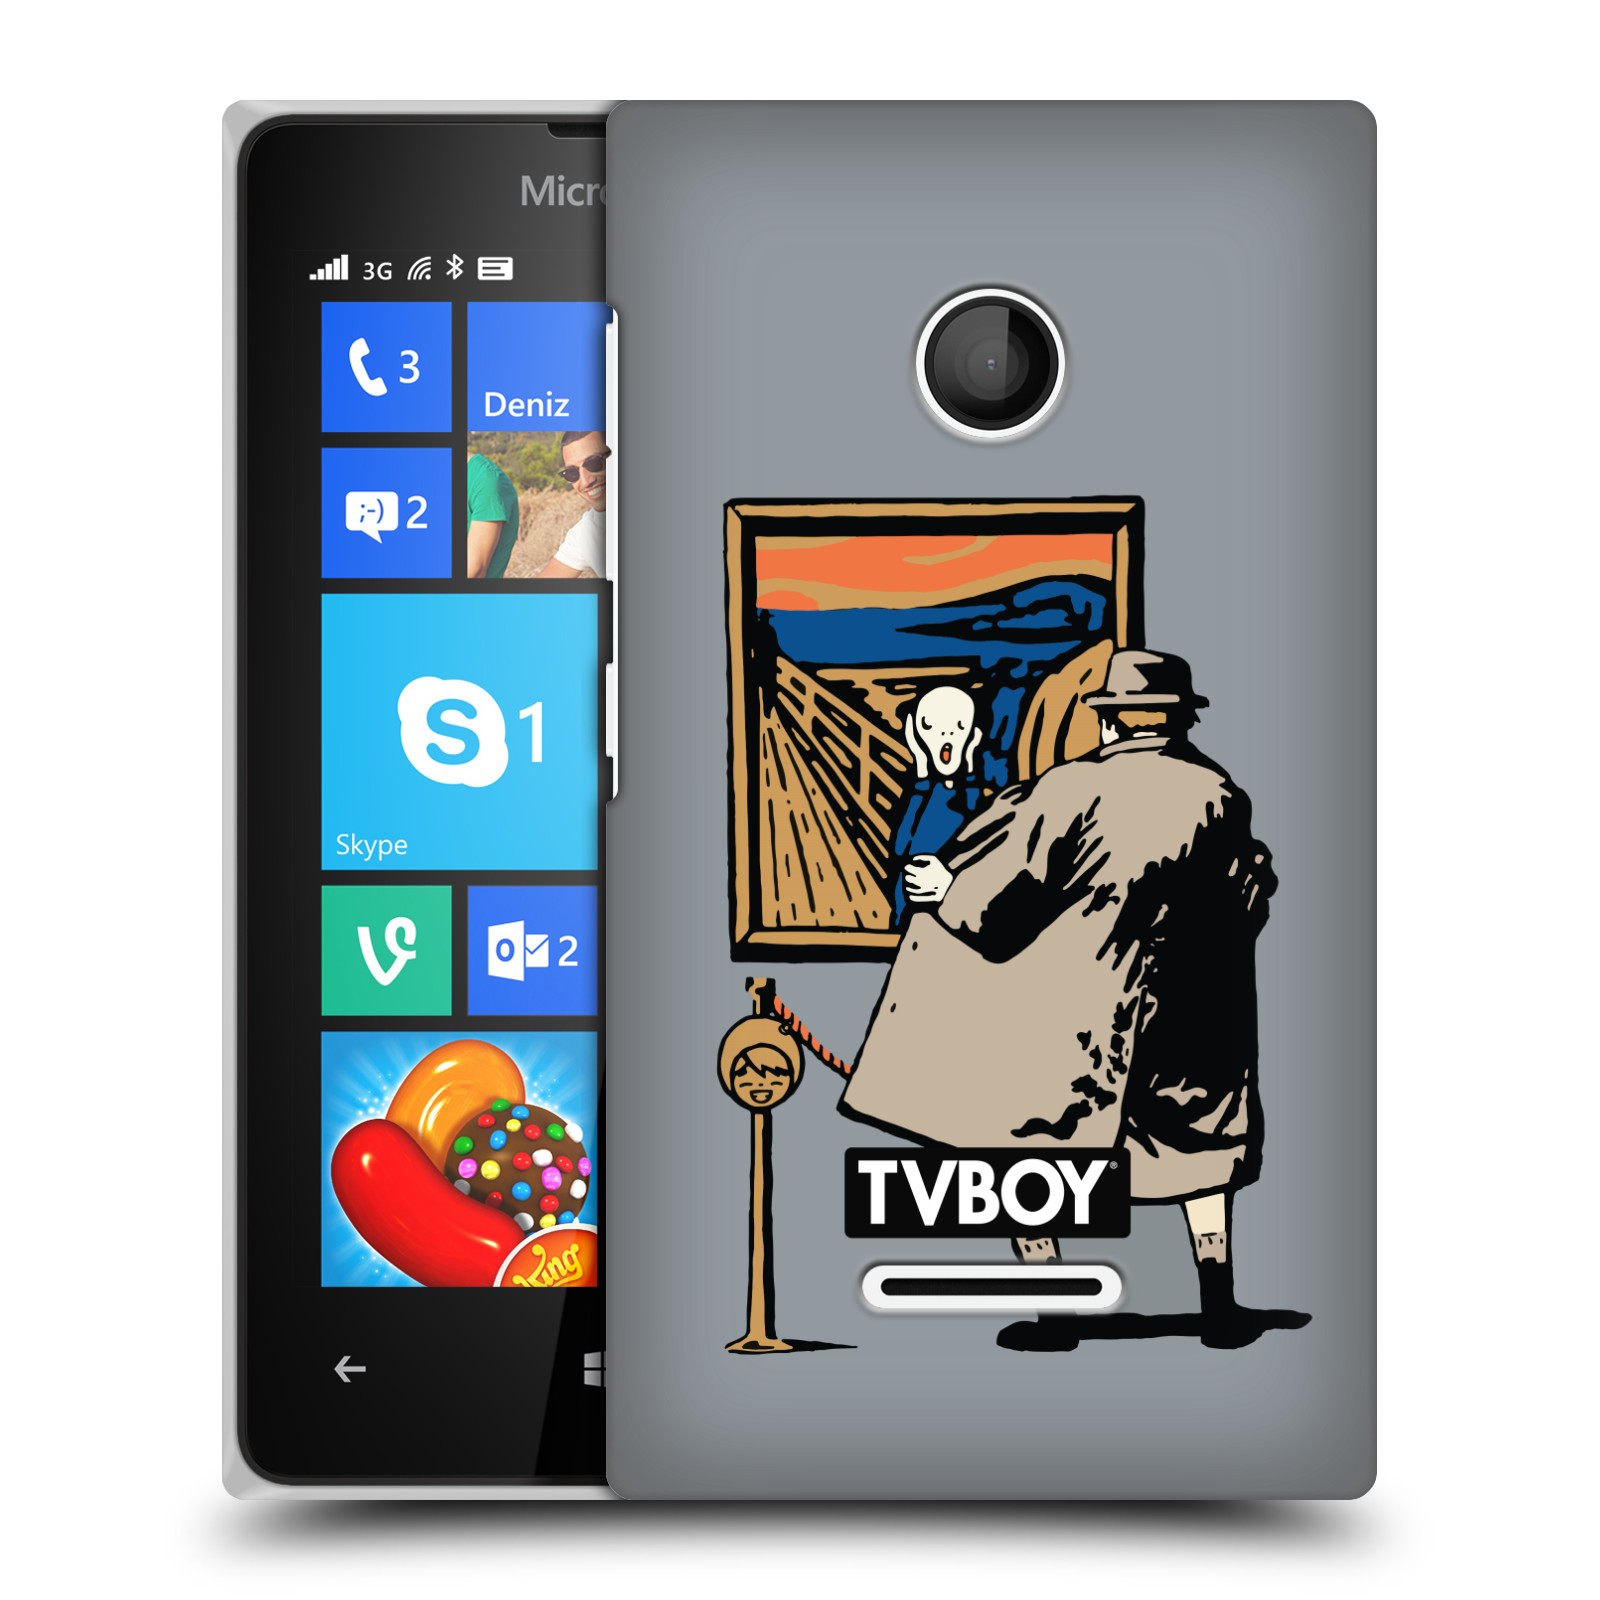 OFFICIAL TVBOY URBAN CELEBRITIES HARD BACK CASE FOR MICROSOFT PHONES